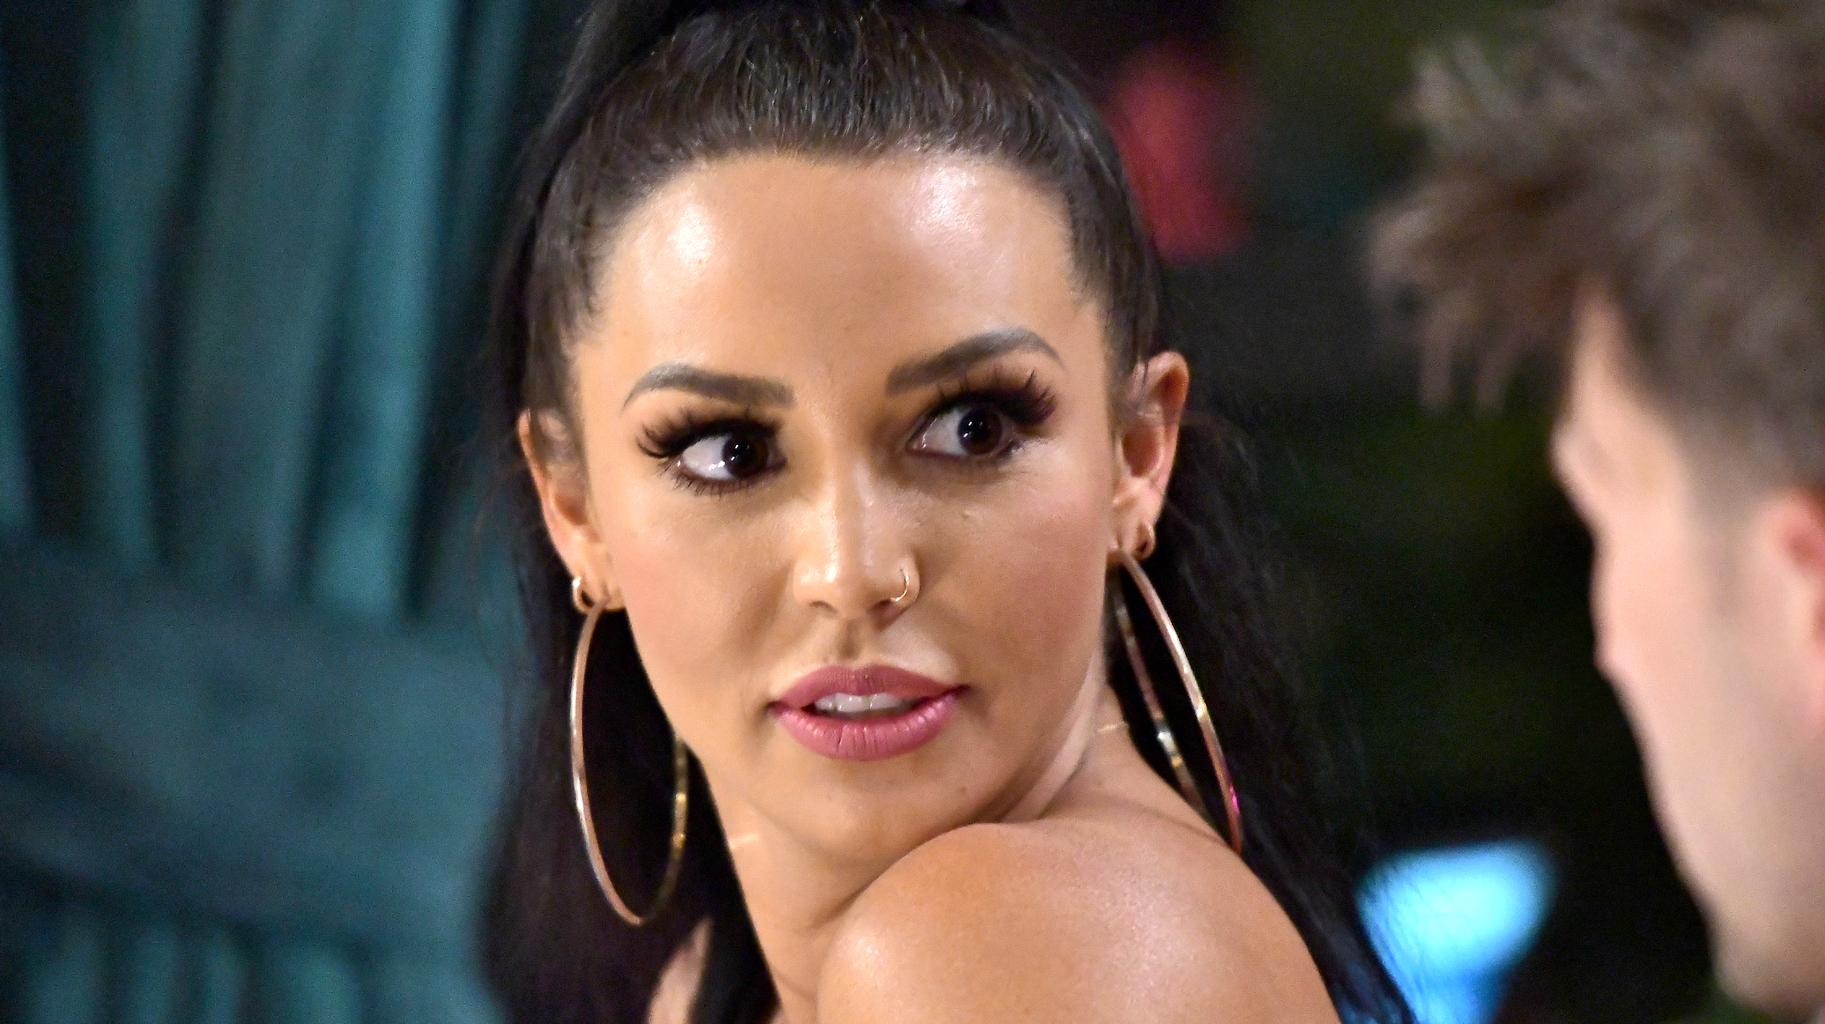 Scheana Shay Goes Too Far With The Self-Tanner? - Claps Back At People Accusing Her Of 'Blackfishing' In New Pic!